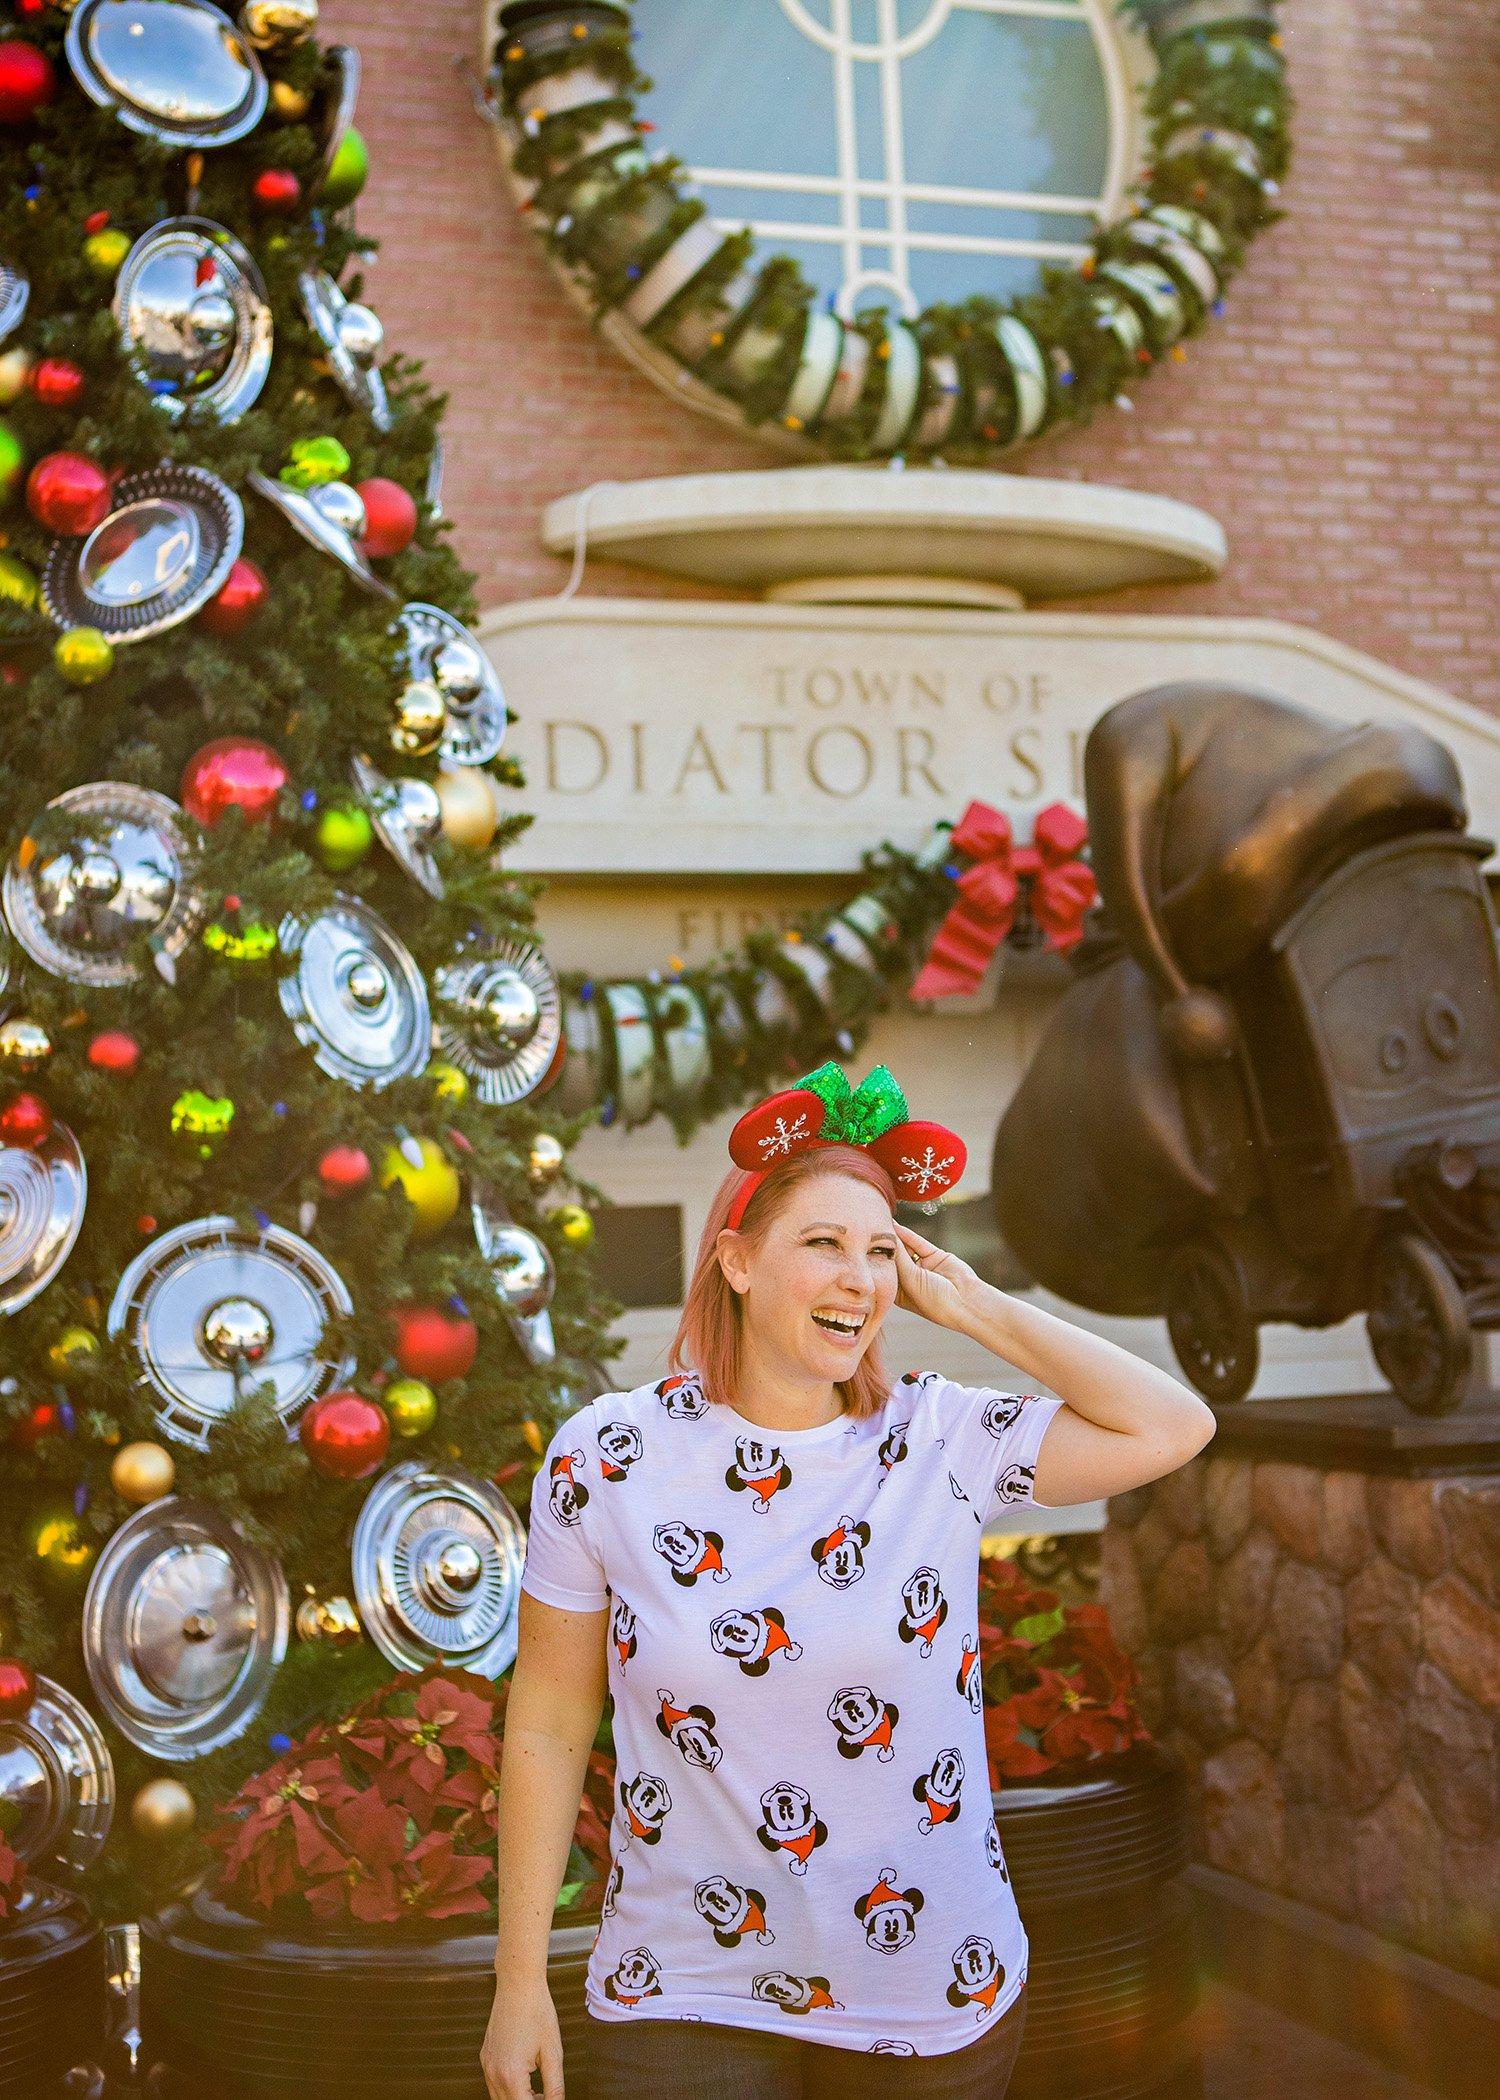 Looking for fun Disneyland outfits? This Mickey Christmas Tee is PERFECT for Disneyland Christmas trips!